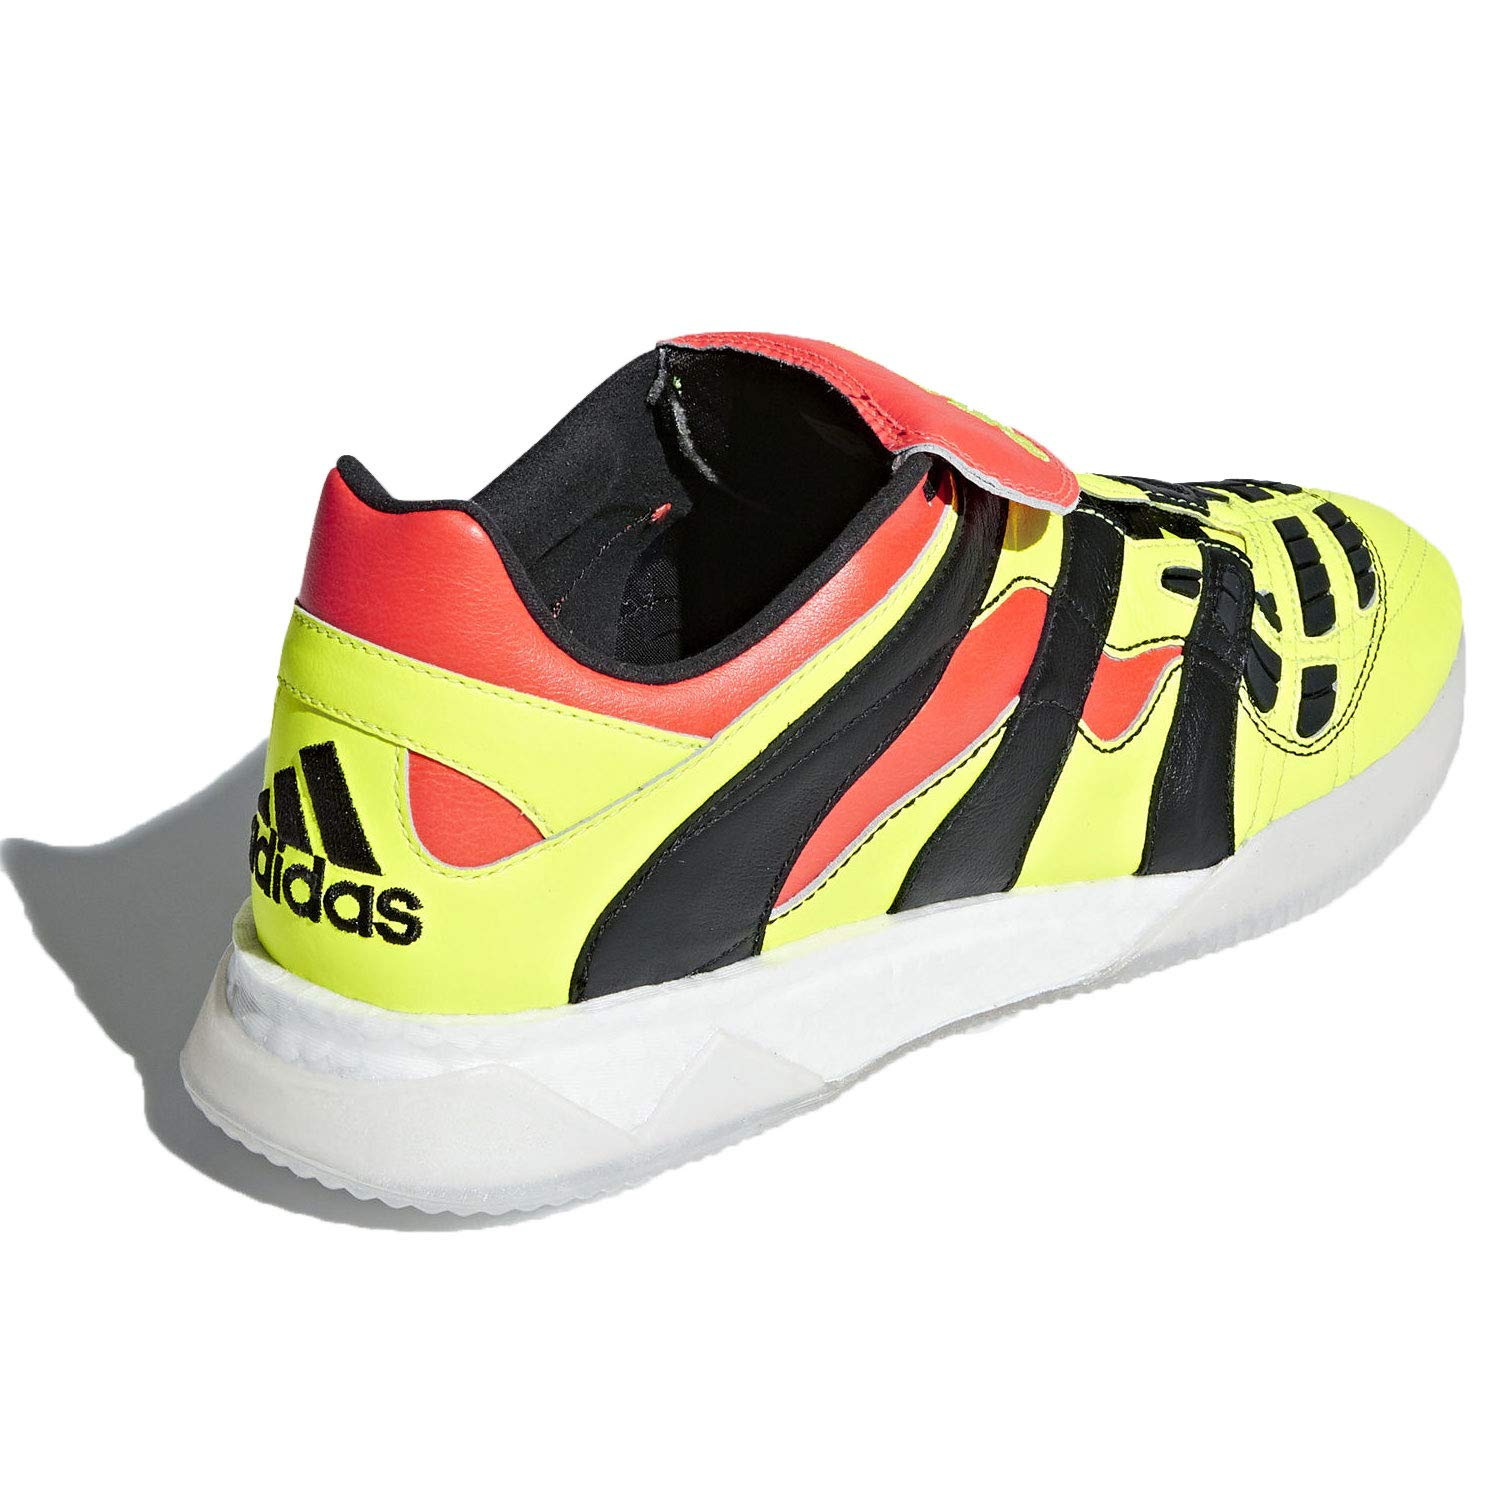 b7d545af4 Amazon.com | adidas Men Predator Accelerator Trainers (Yellow/Solar Yellow/core  Black/Solar red) | Shoes